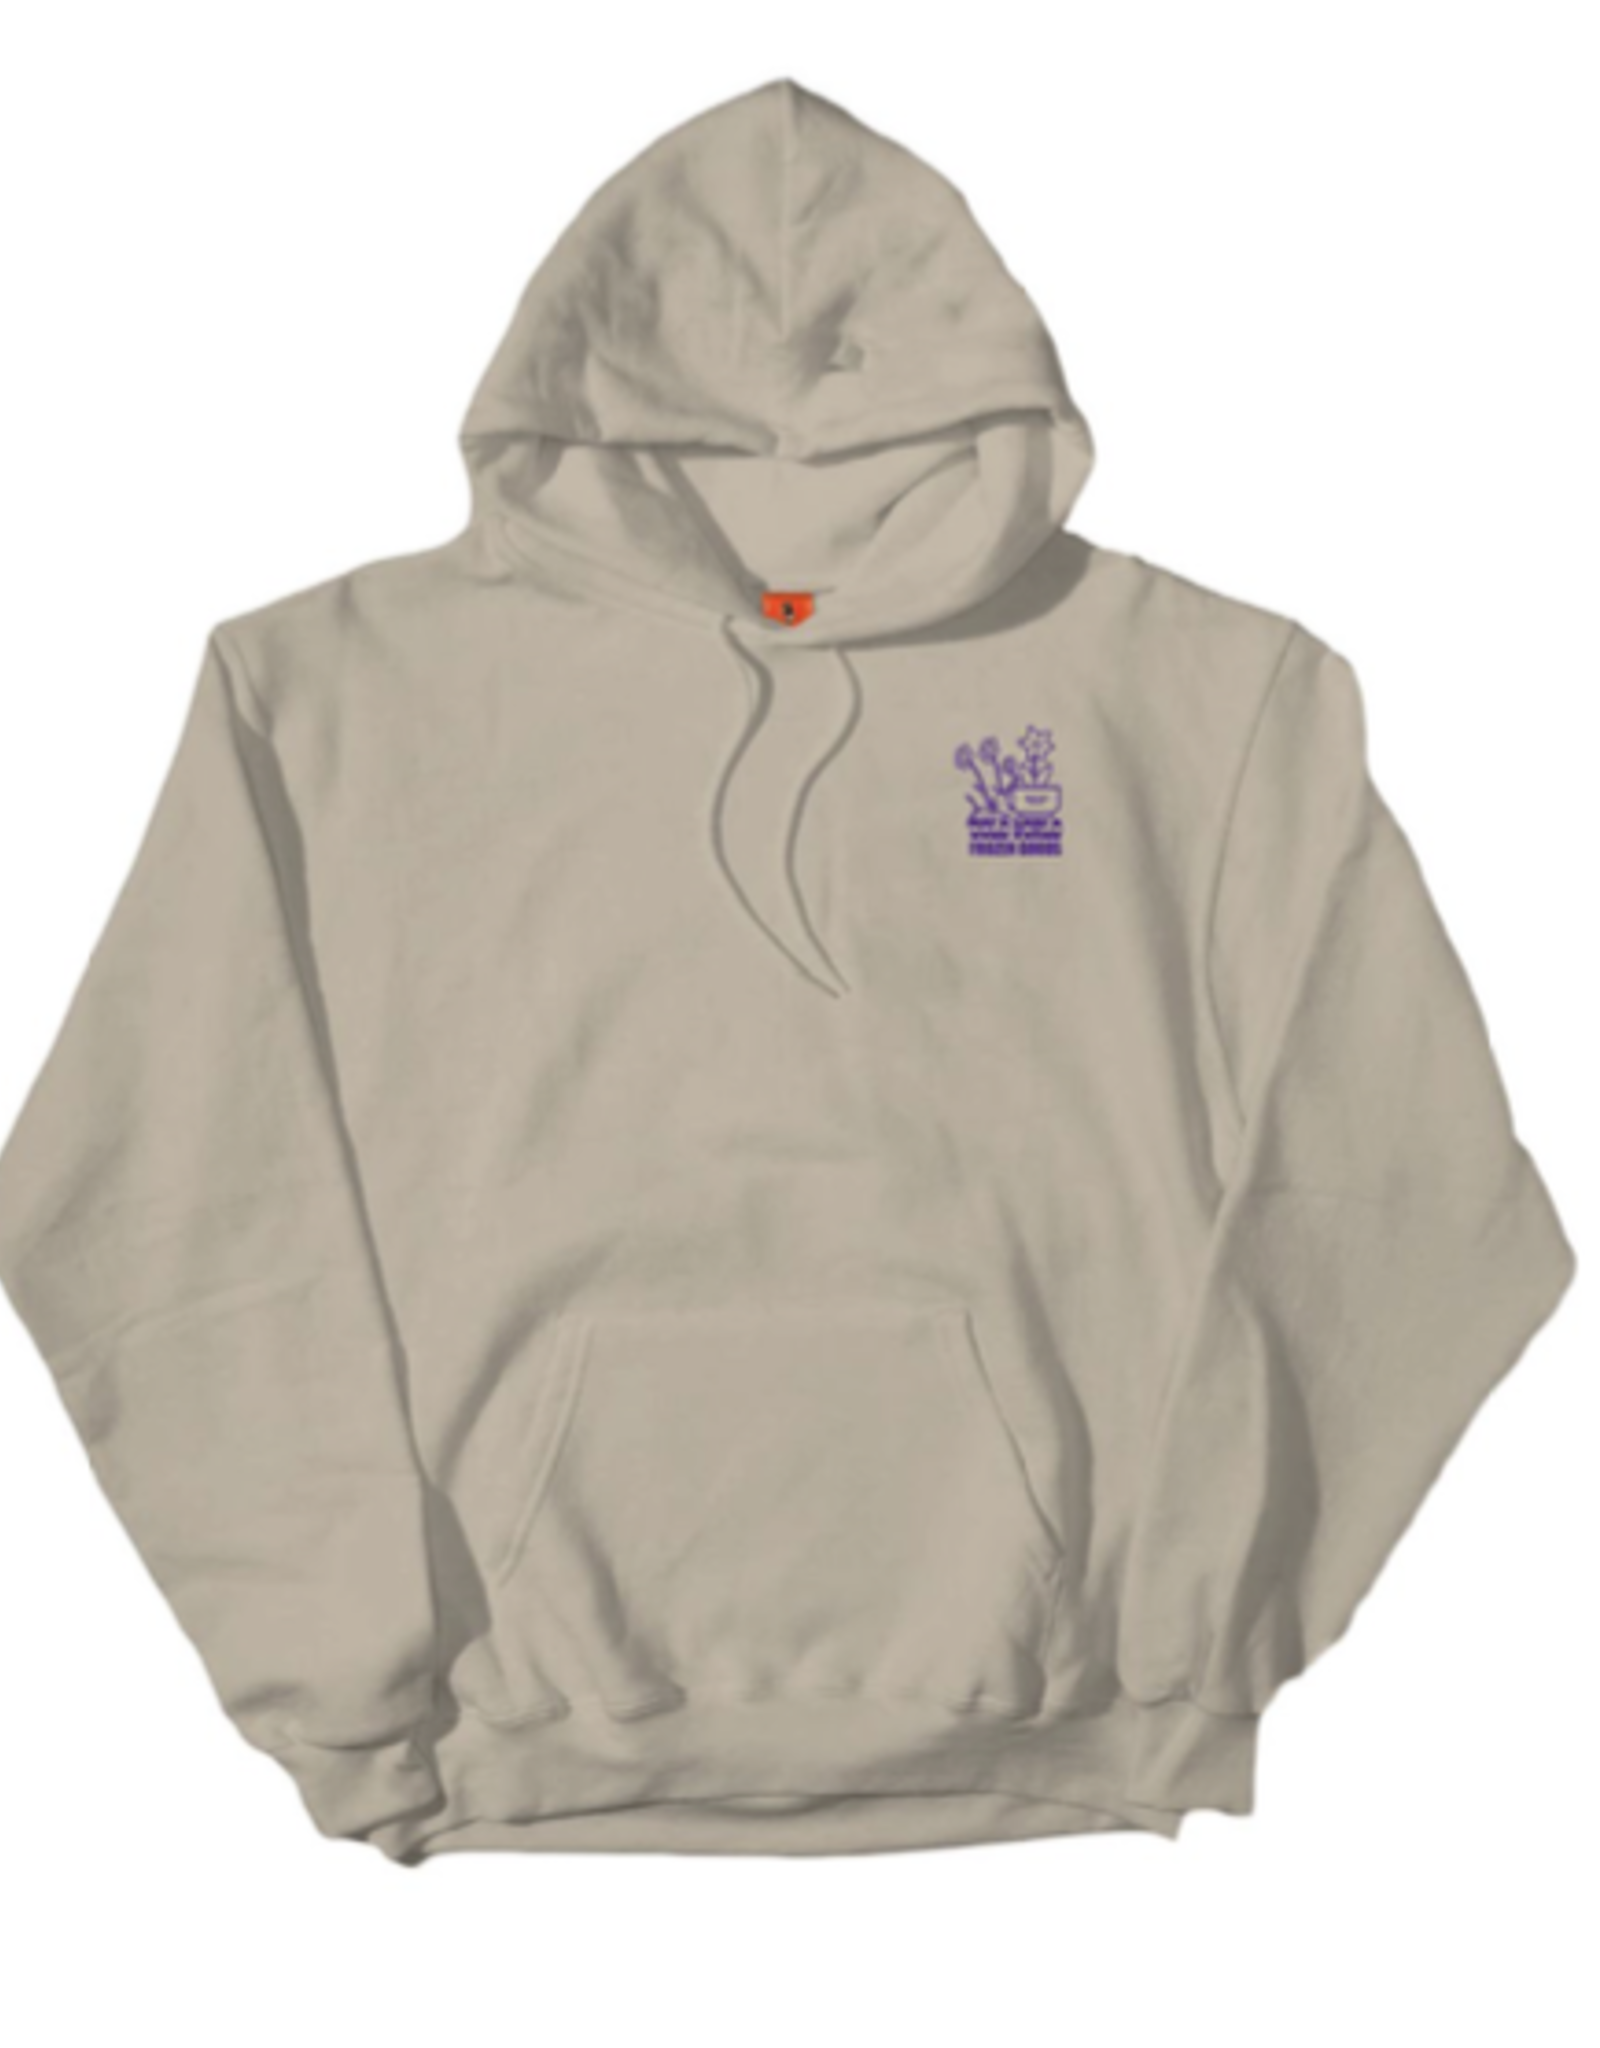 COLD WORLD COLD WORLD INDUSTRY PLANT P/O HOODIE SAND